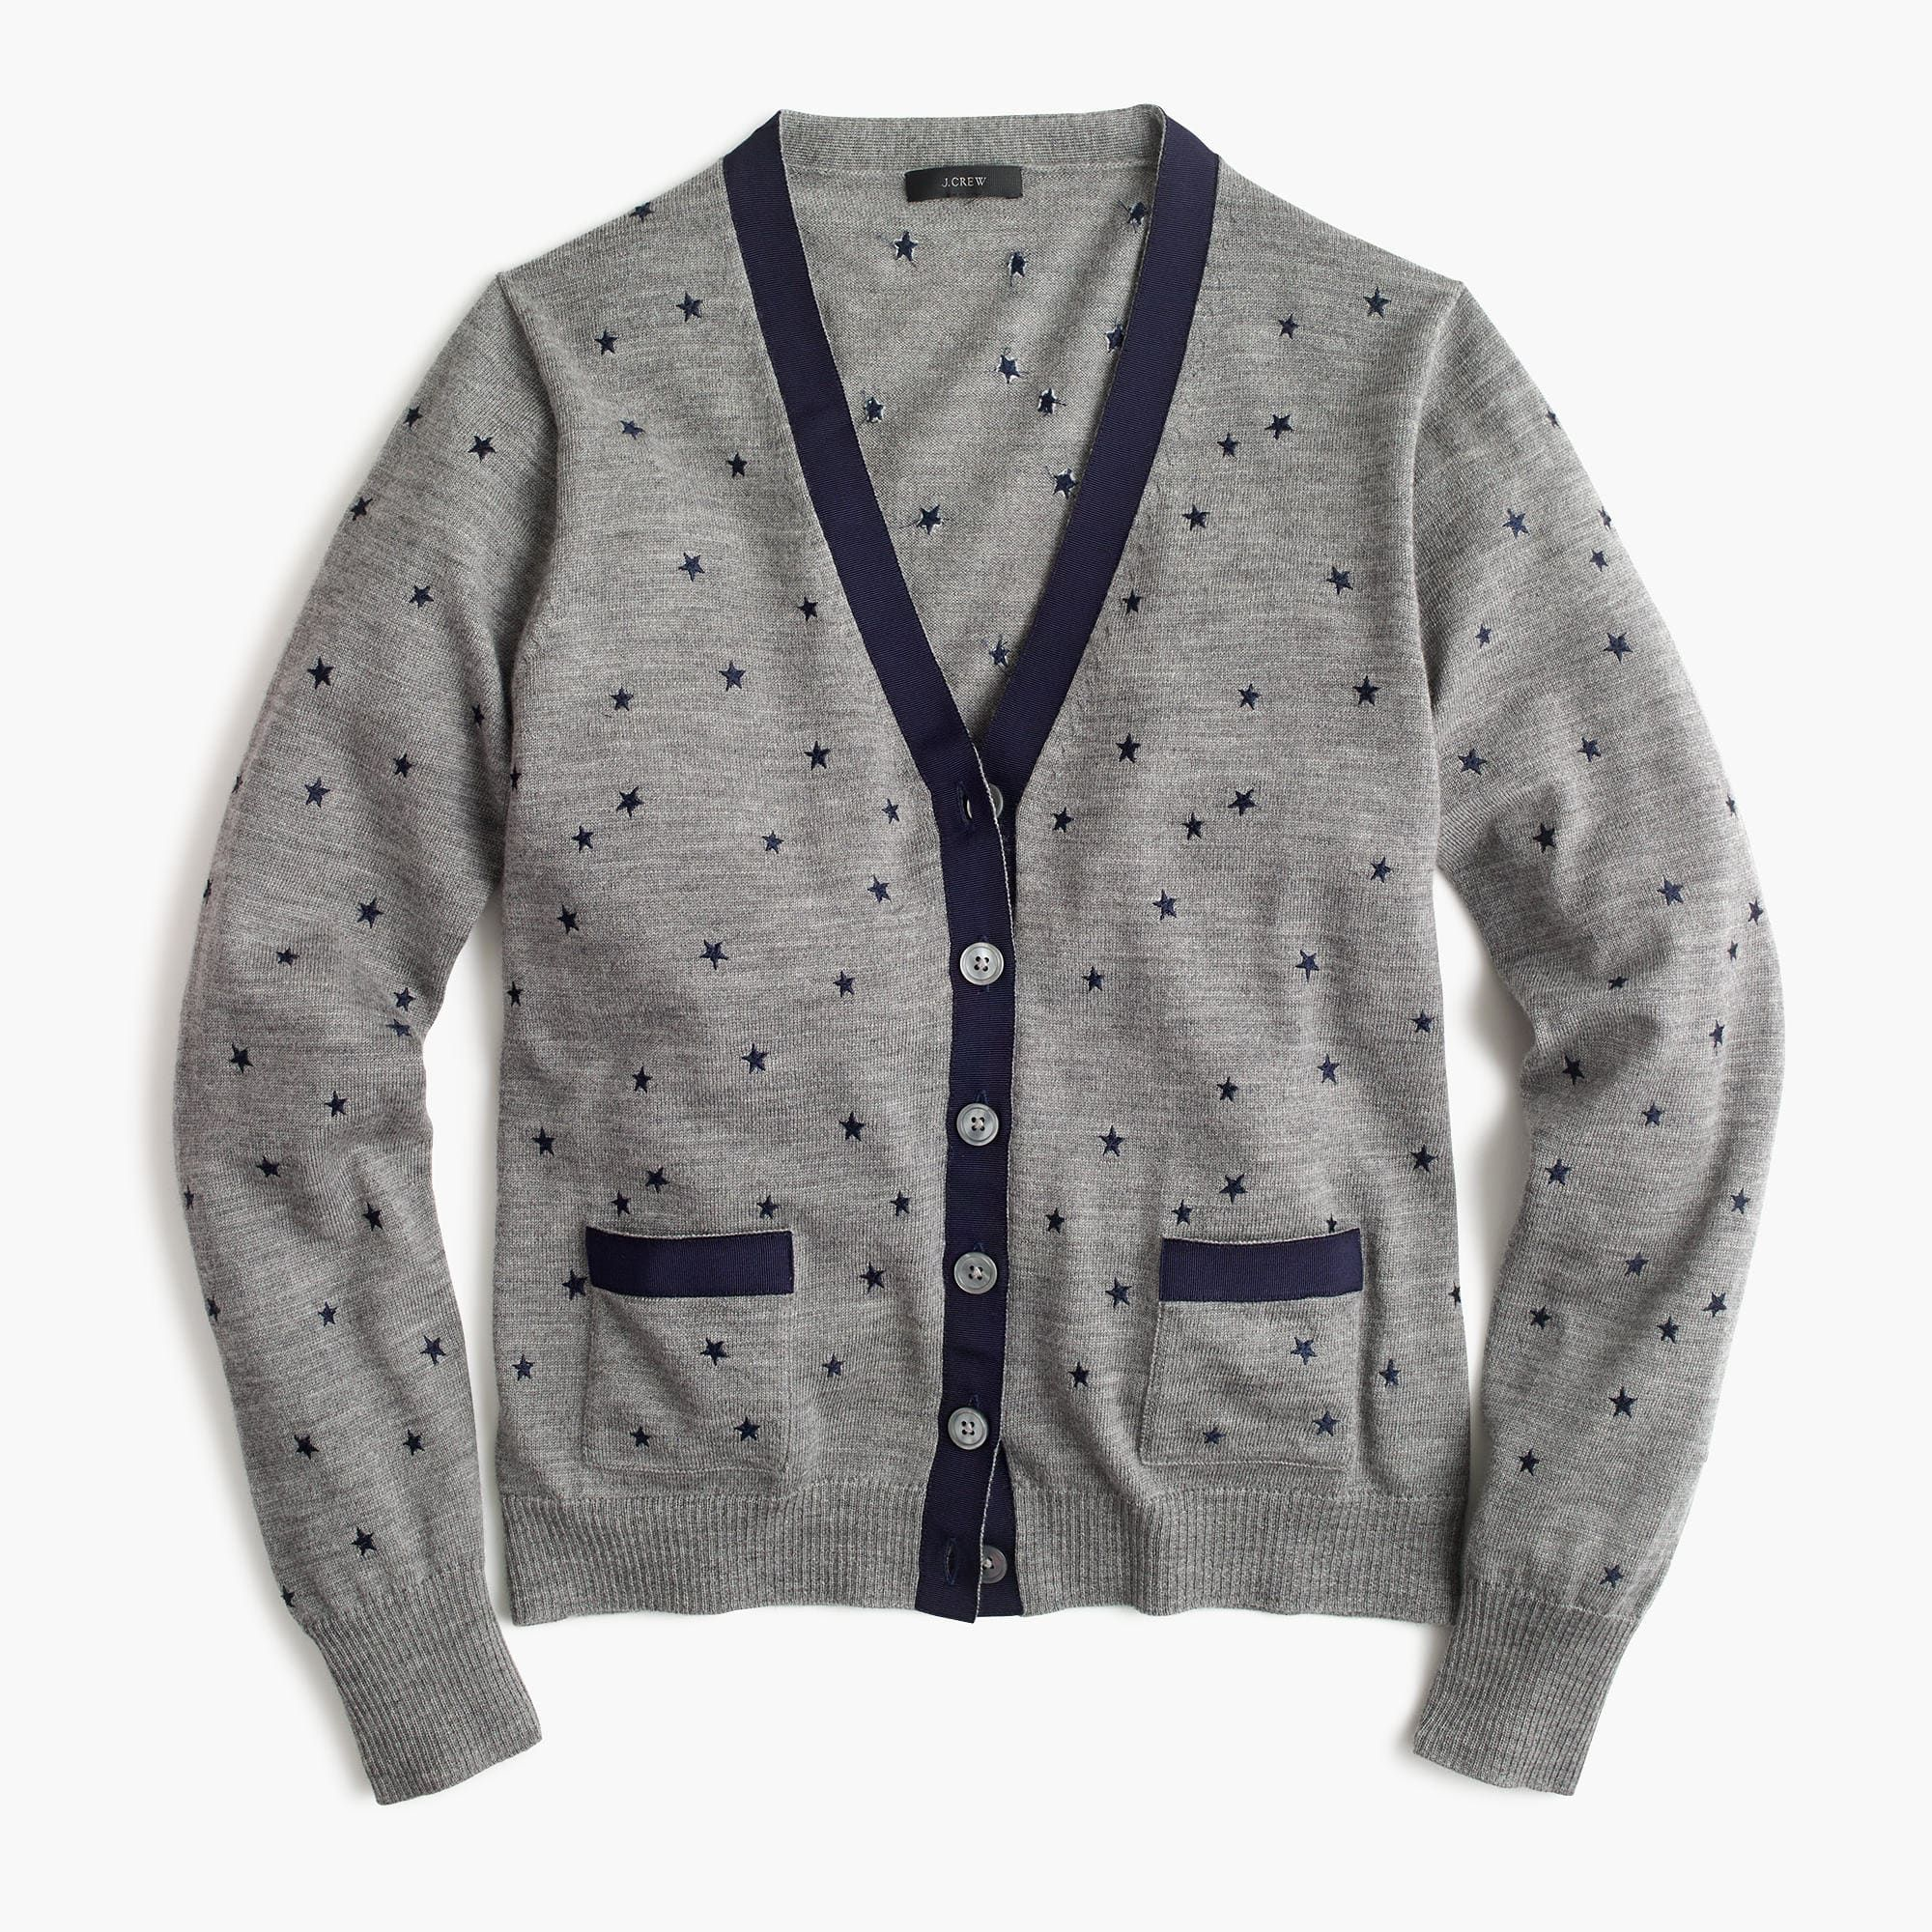 27245c20e592 A classic cardigan sweater with double pockets and polished grosgrain  ribbon tipping, plus an out-of-this-world star print. Semifitted.